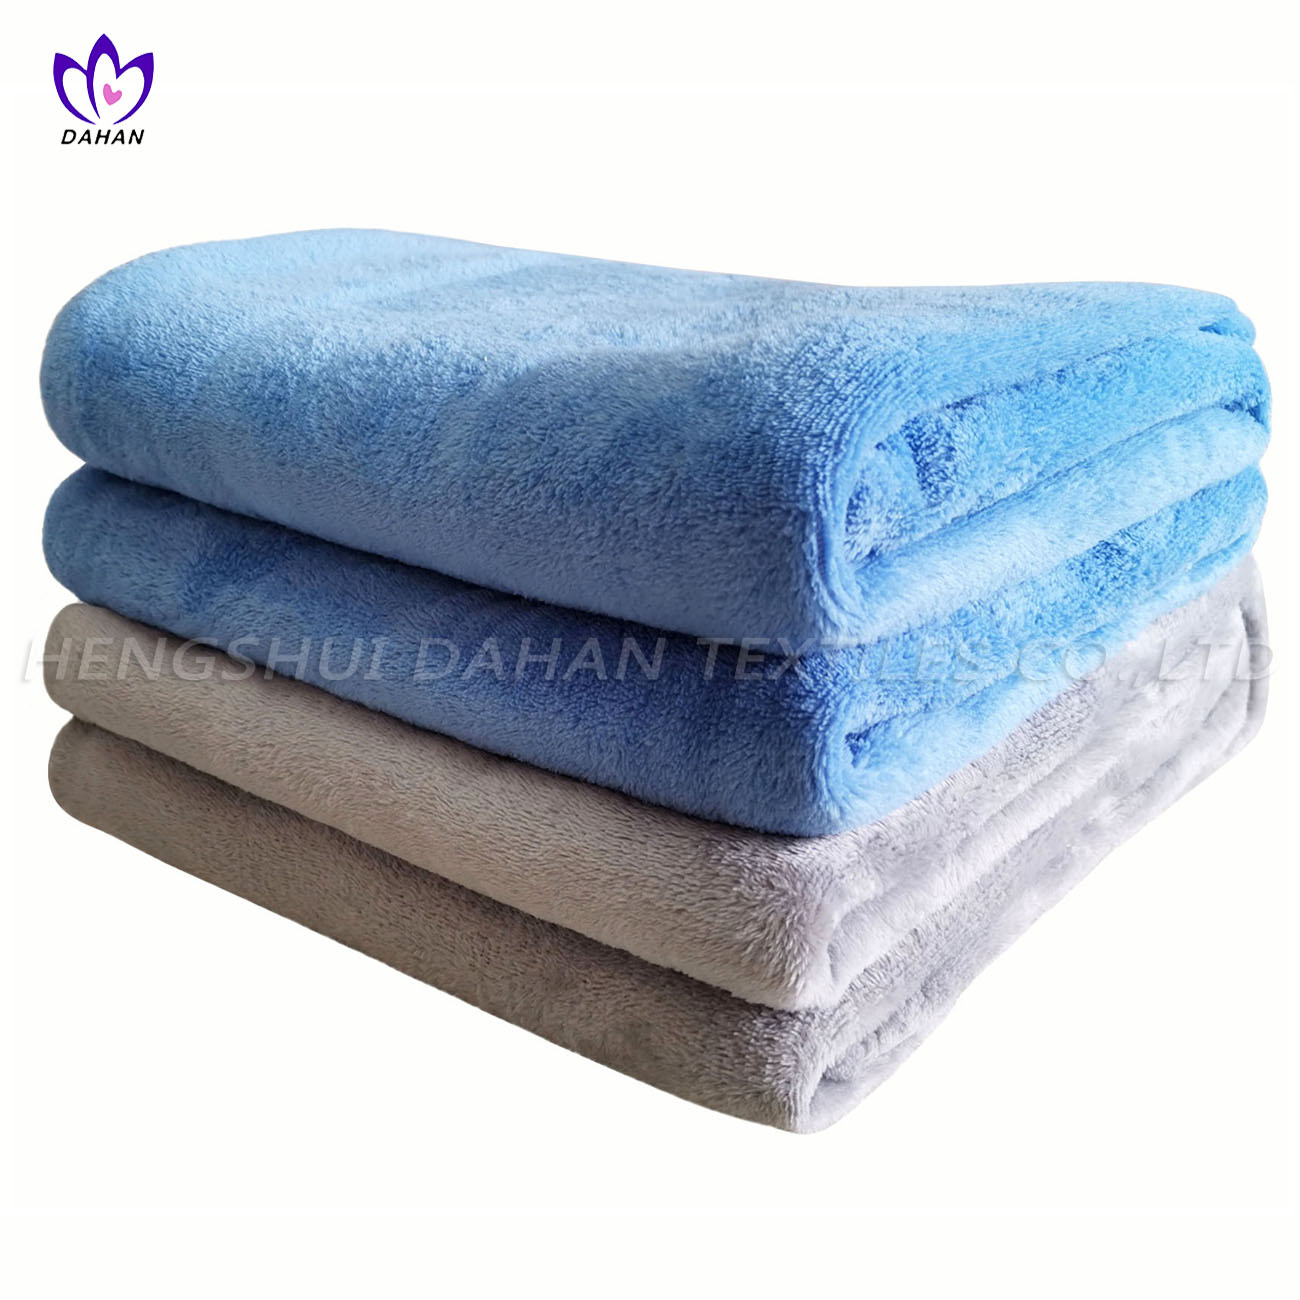 BK28 Solid color microfiber coral fleece blanket.